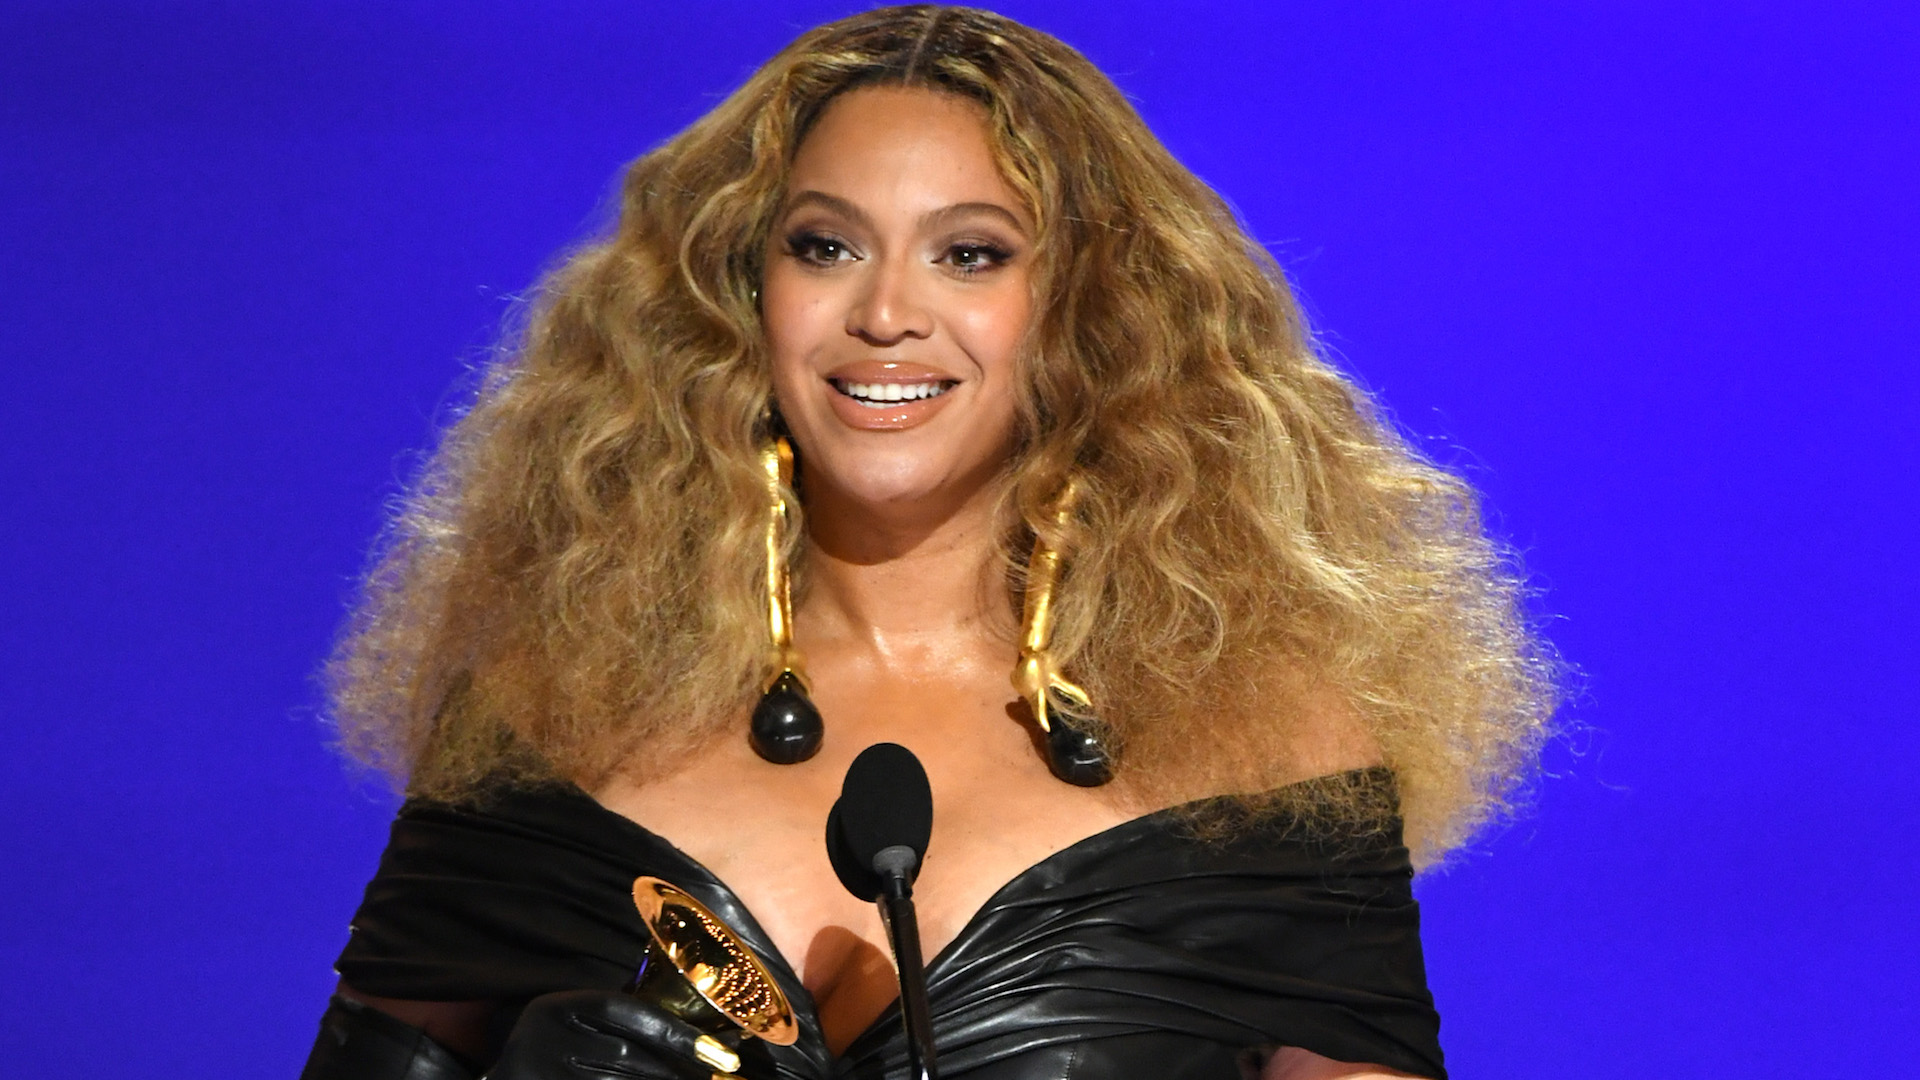 Beyoncé Breaks Record for Most Grammy Wins by a Singer